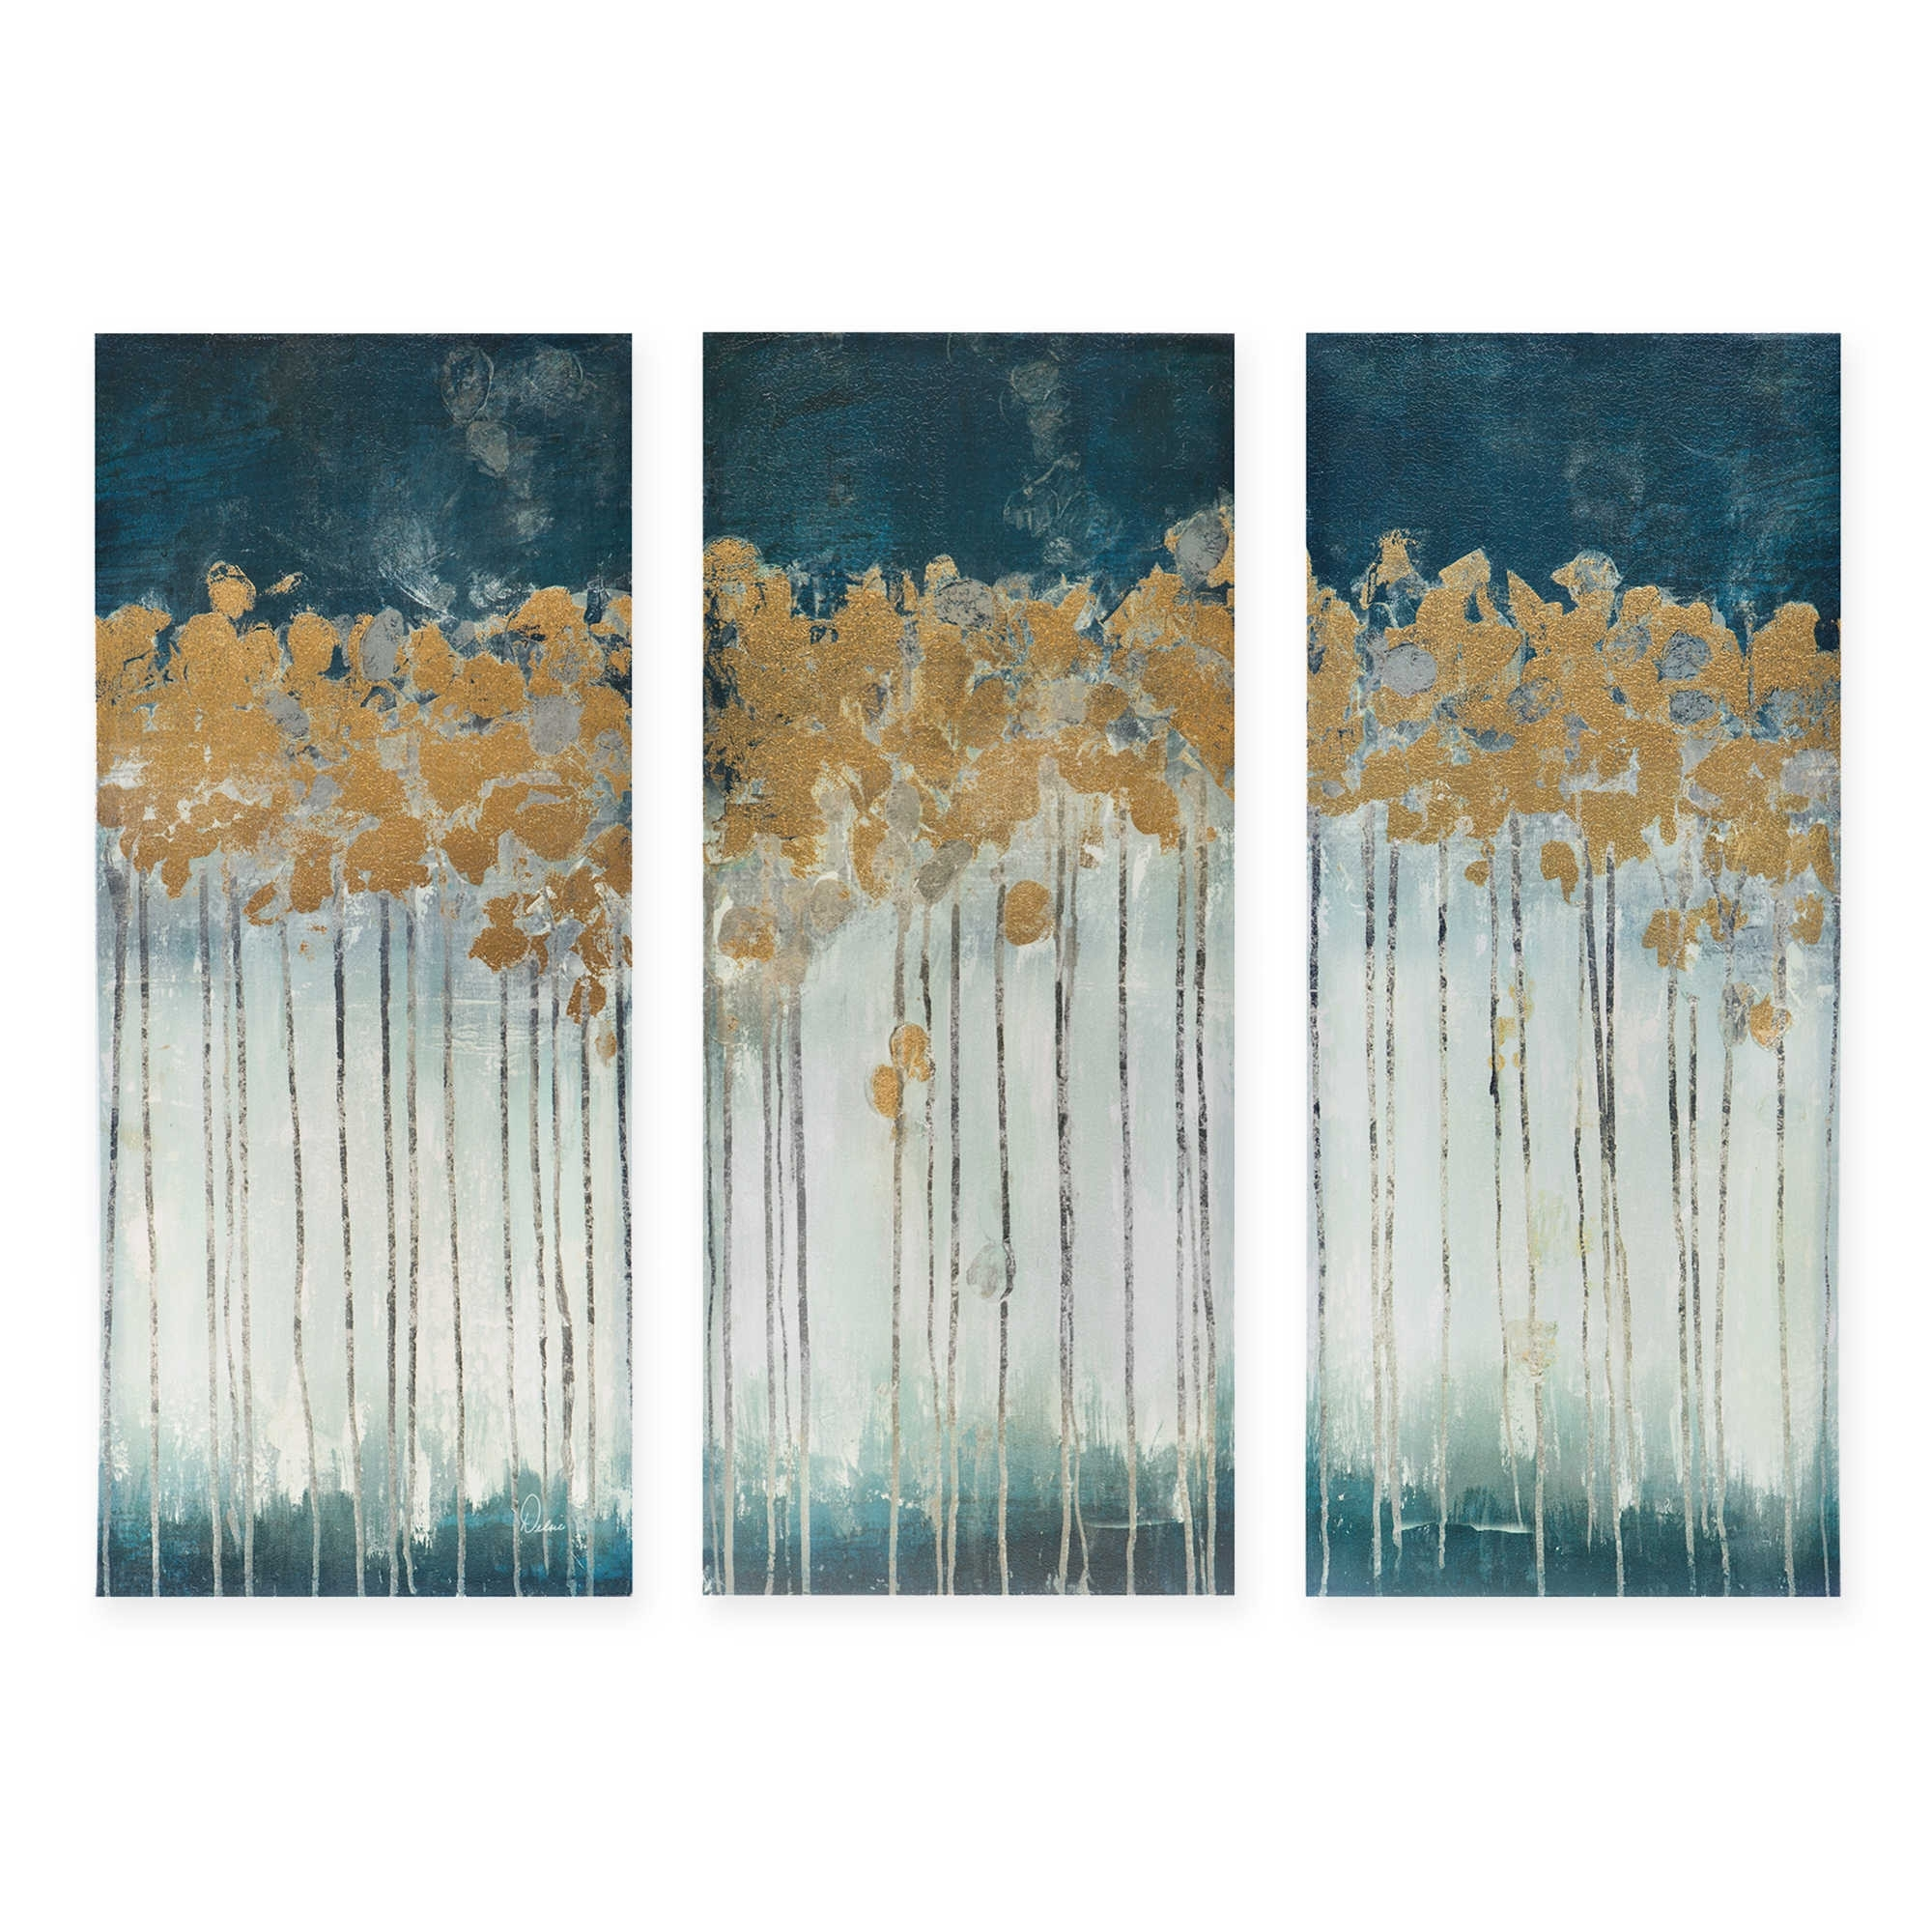 3 Piece Wall Art Lovely 31 Beautiful Wayfair Wall Decor – Mehrgallery With Regard To Most Recent Wayfair Wall Art (View 14 of 15)